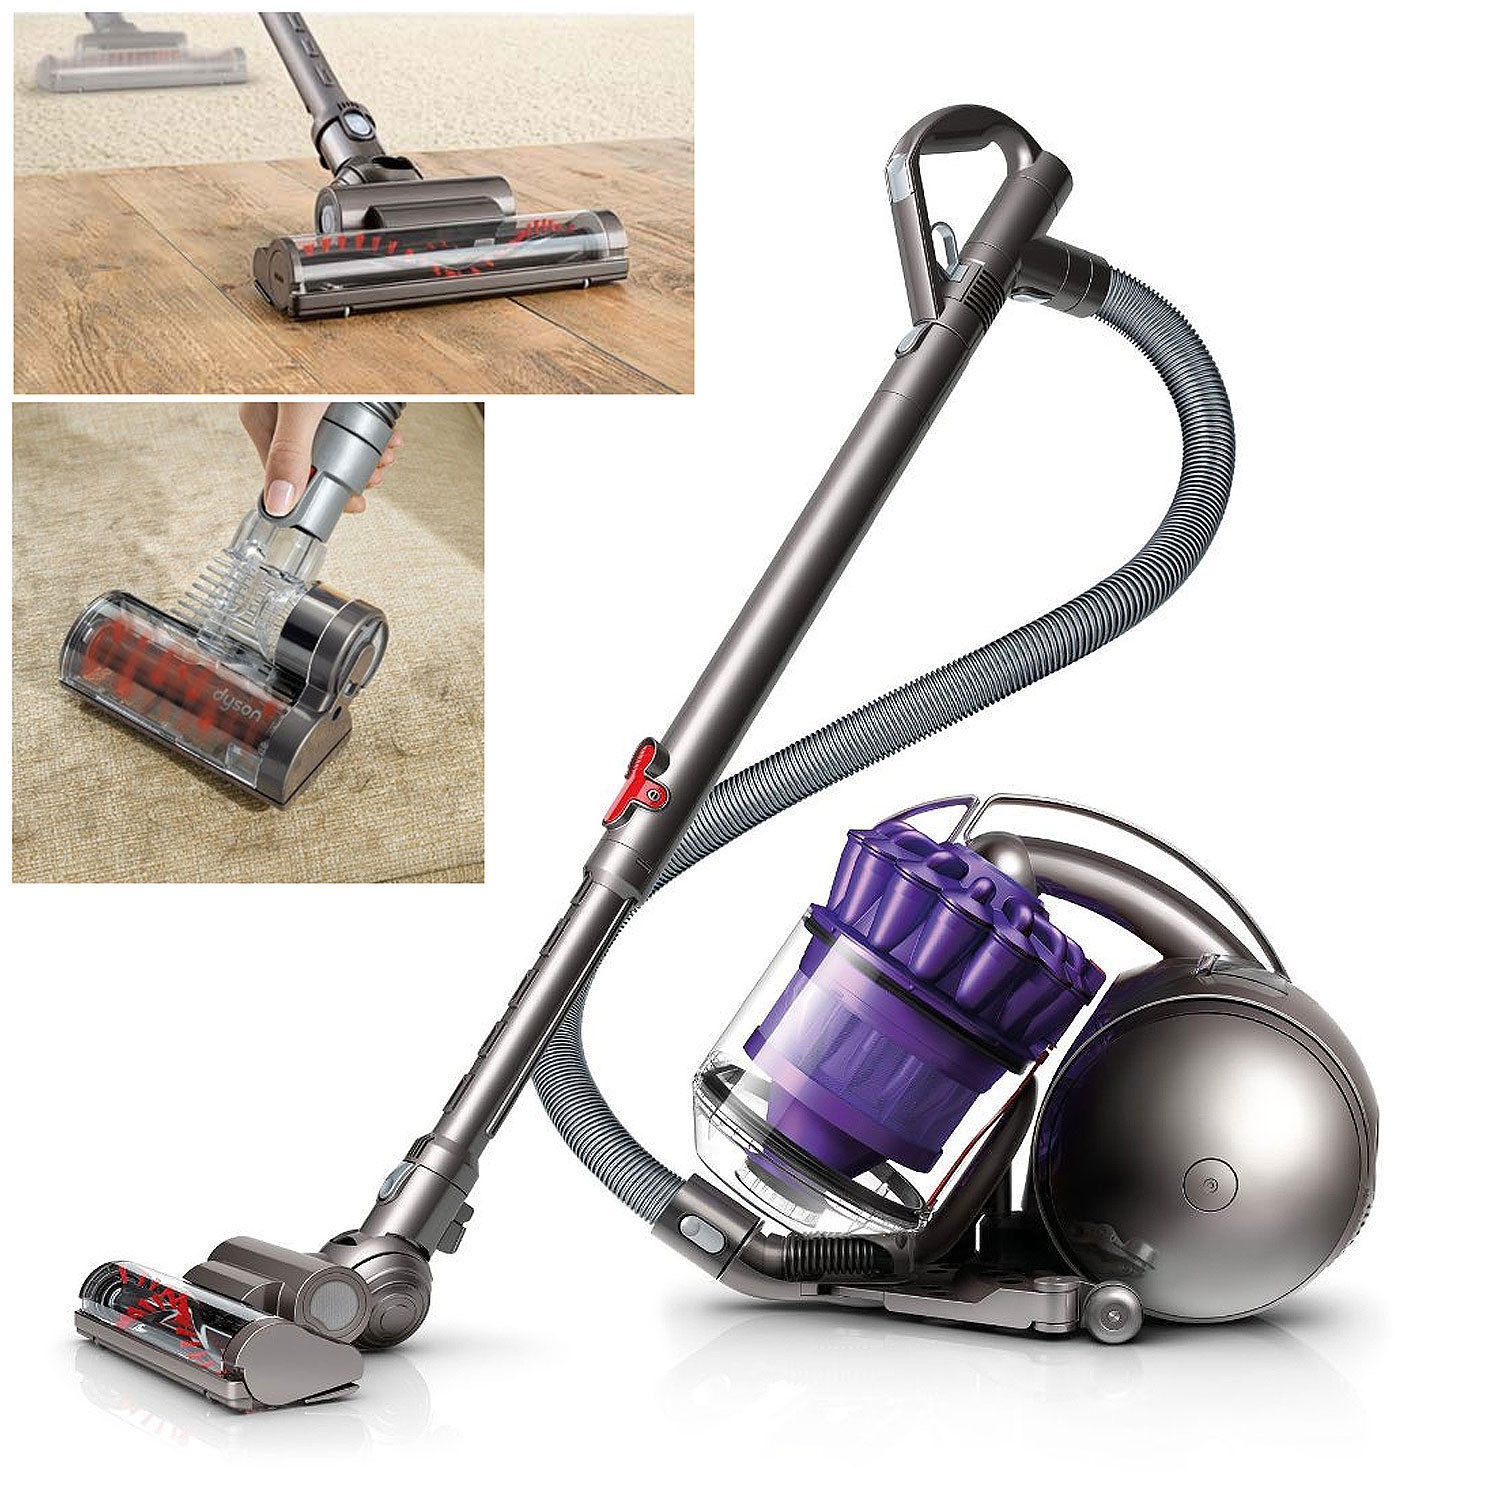 Dyson DC39 Animal Multi Floor Bagless Canister Vacuum ref